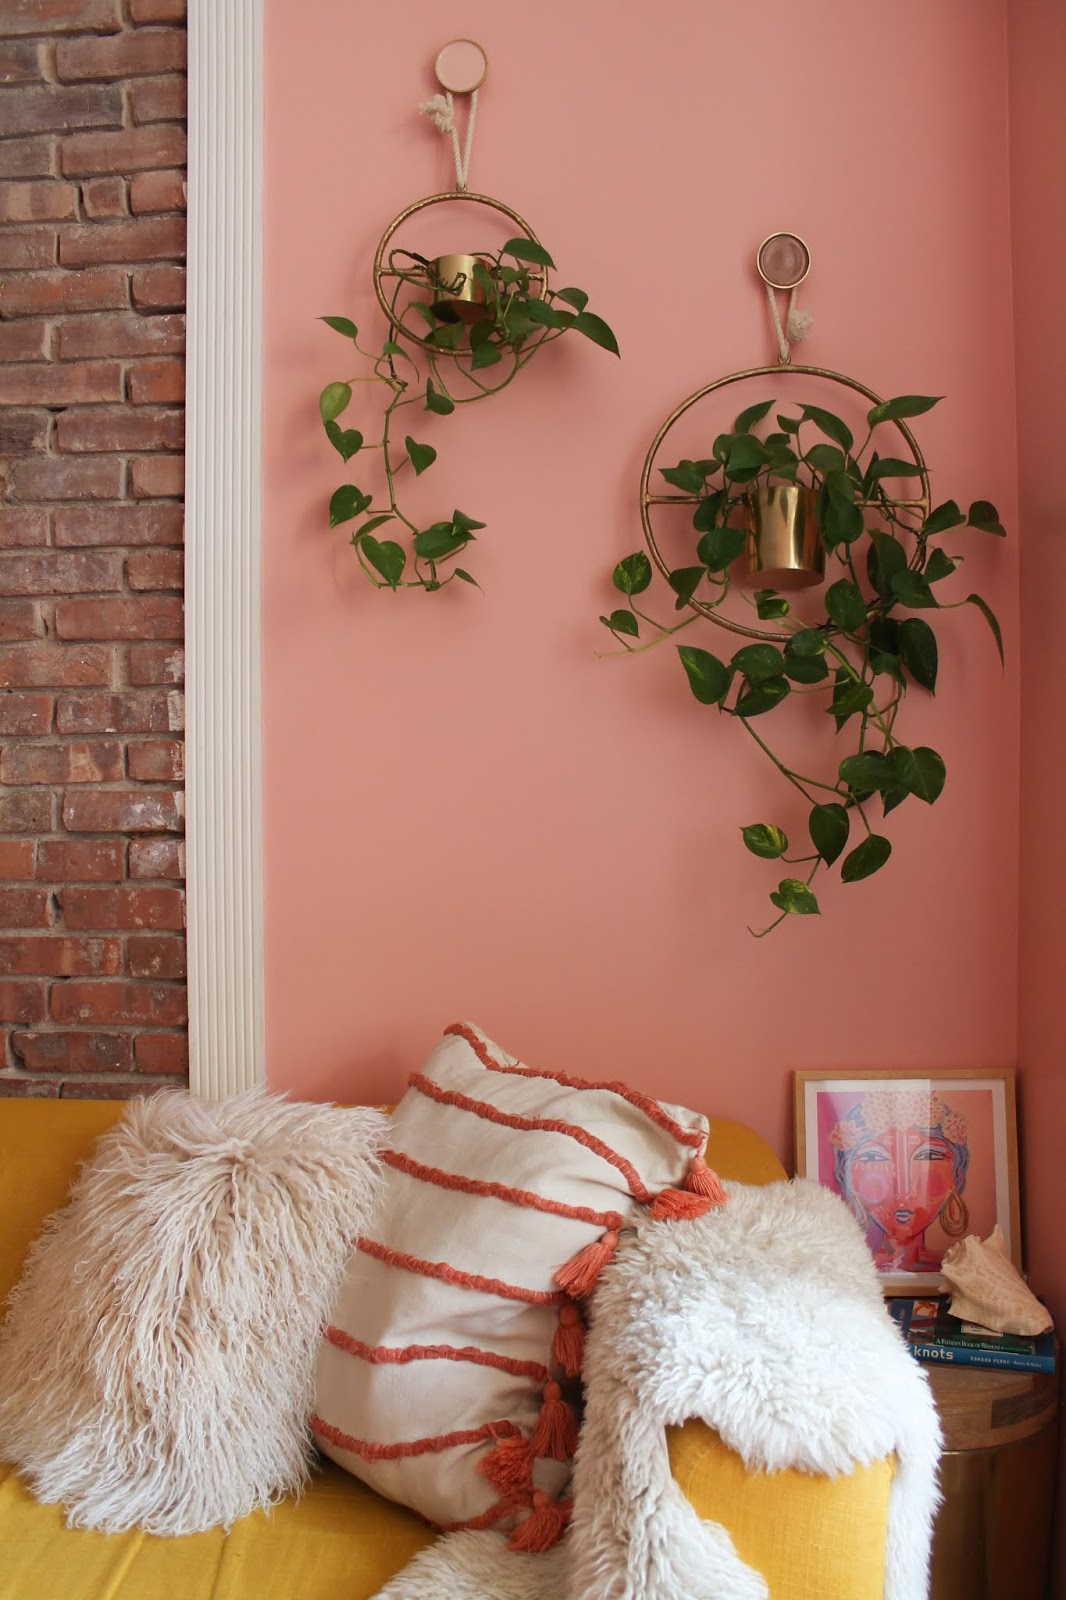 clare paint rose season, pink blush living room, coral living room, pink bohemian living room inspo, pink wall Inspo, pink wall inspiration, maximalist pink living room, pink room ideas, coral room ideas, pink room wall, how to paint your walls pink, best pink paint for walls, best vac-free paint, Clare paint rose season, Clare paint living room, Clare paint review, Pink Walls and Exposed Brick, Warm Pink Living Room, Small Space Apartment Inspo, Astoria Queens Apartments, Small Space NYC Apartment inspo